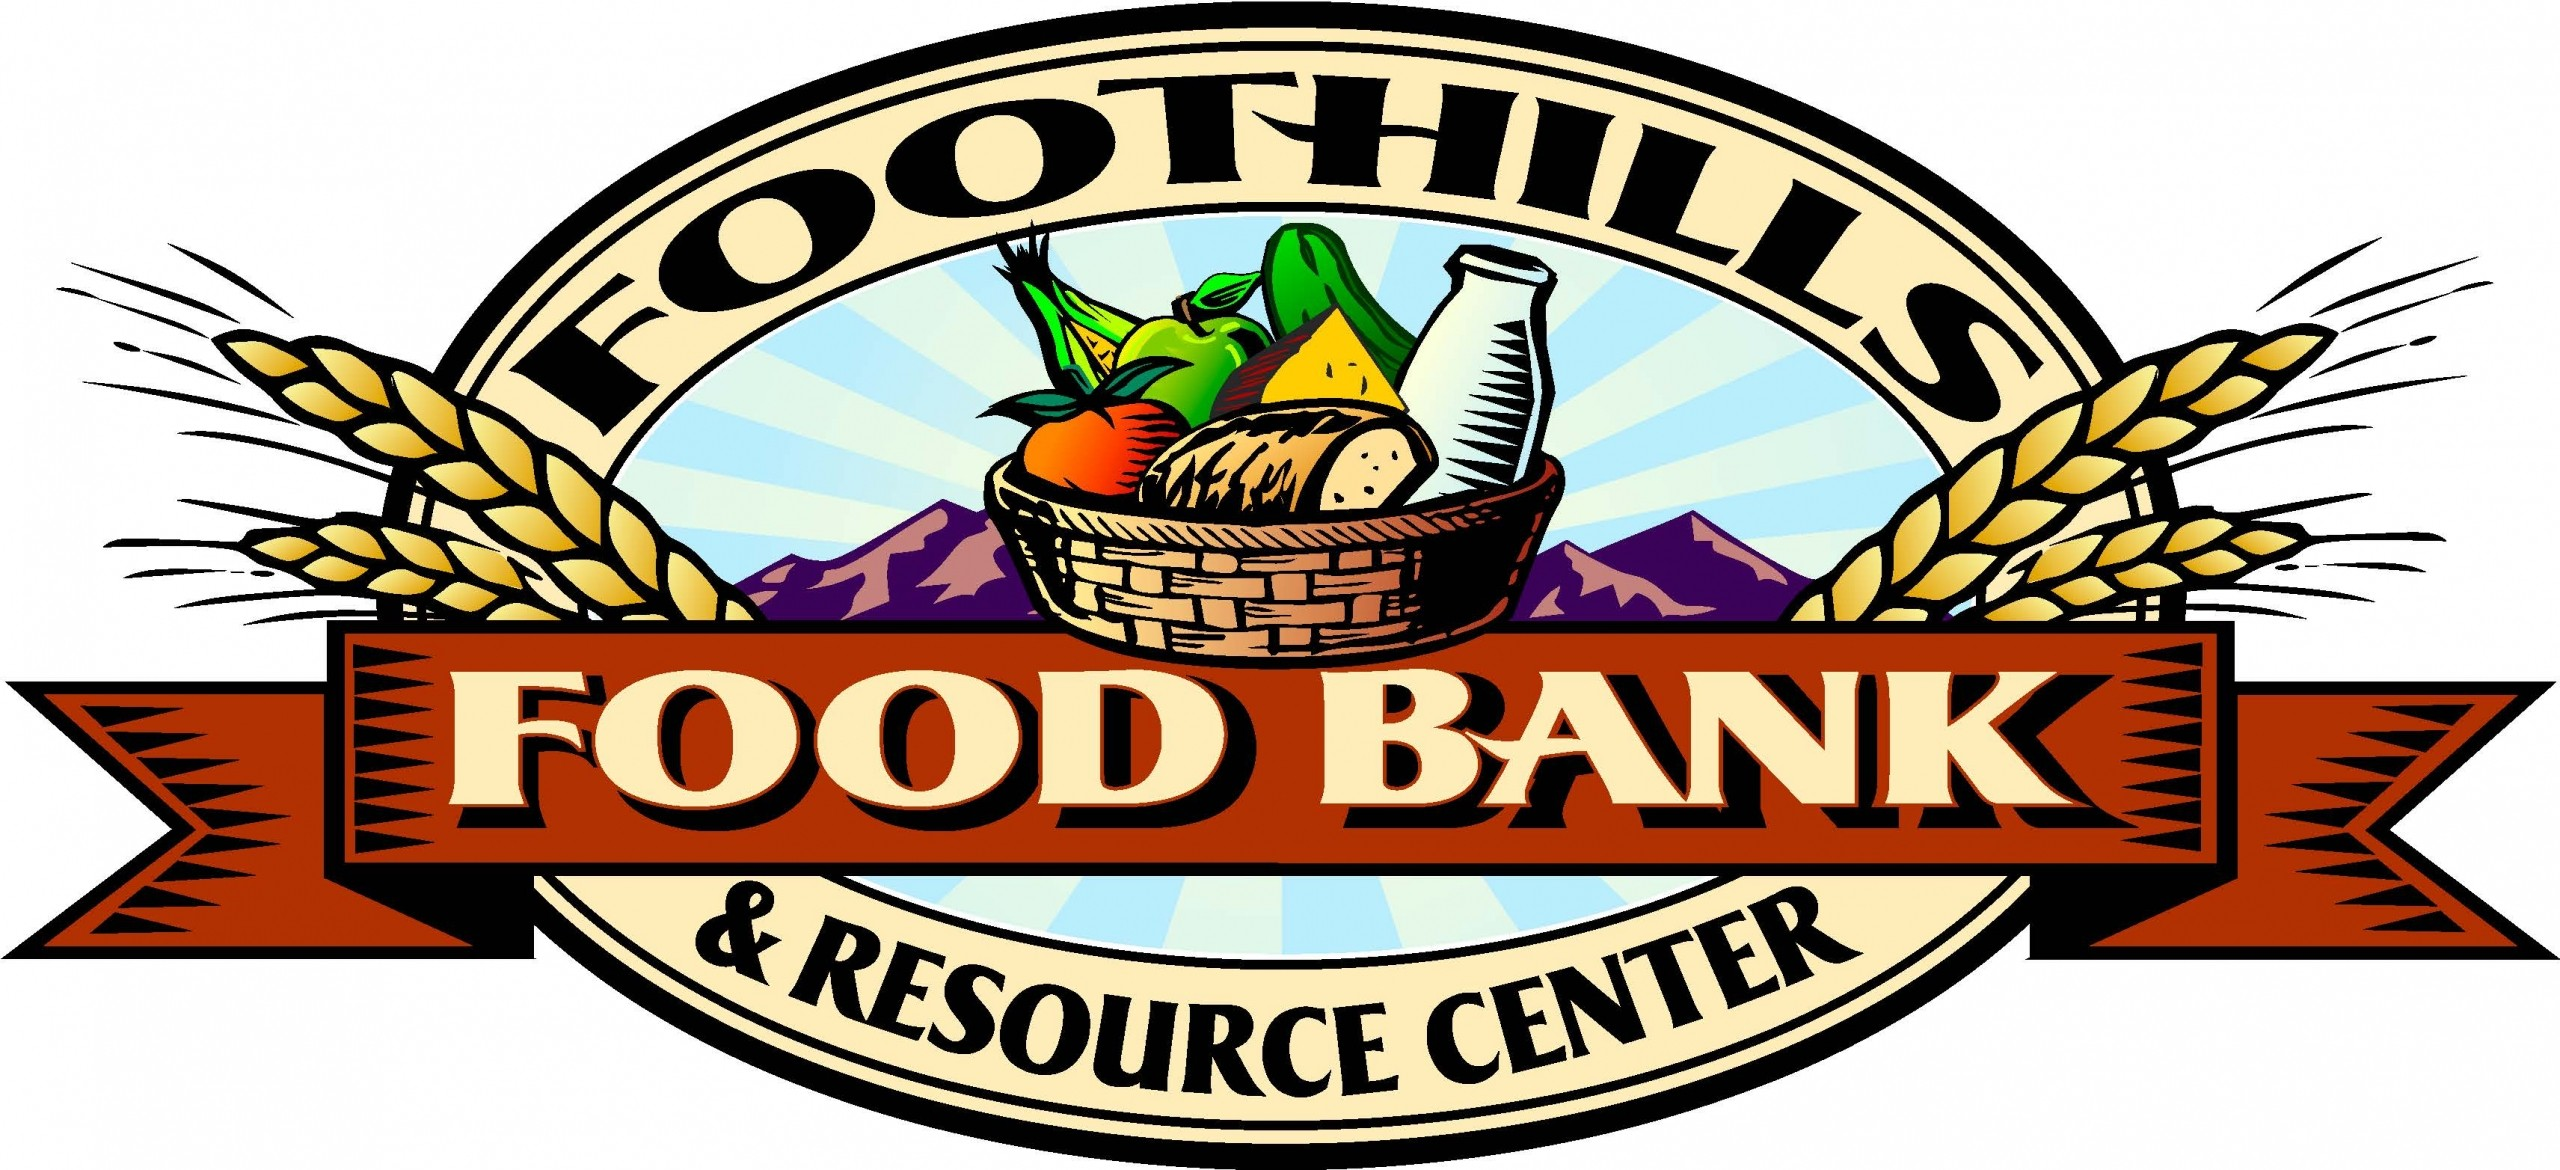 Empty Bowls in Cave Creek to benefit the Foothills Food Bank